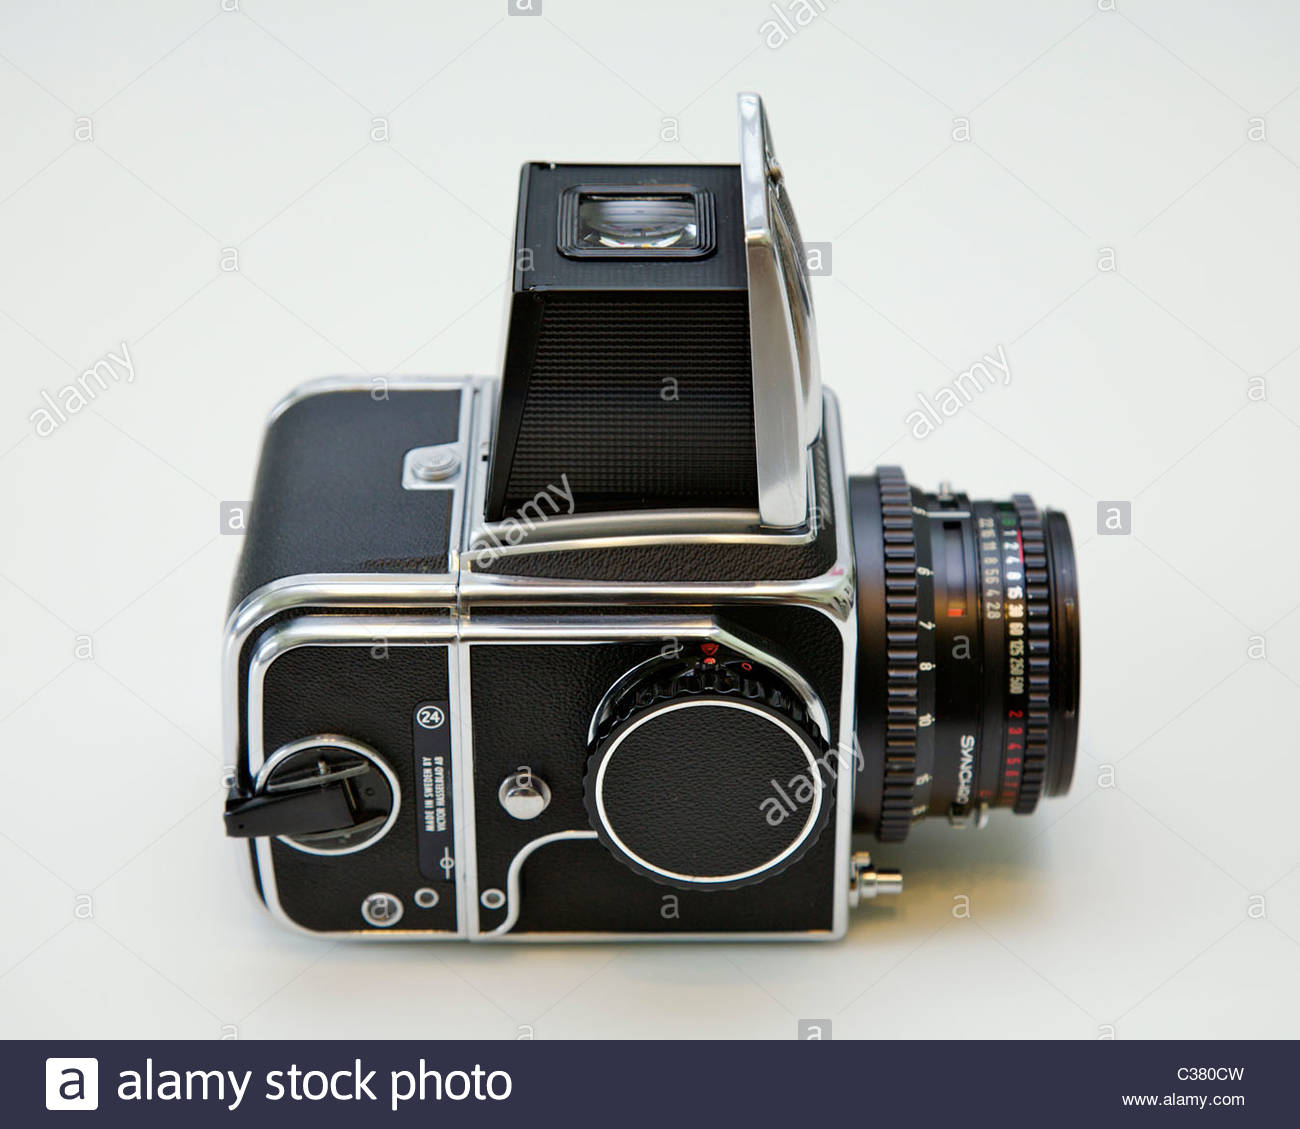 Hasselblad 500cm medium format camera with 50mm Zeiss lens and A-12